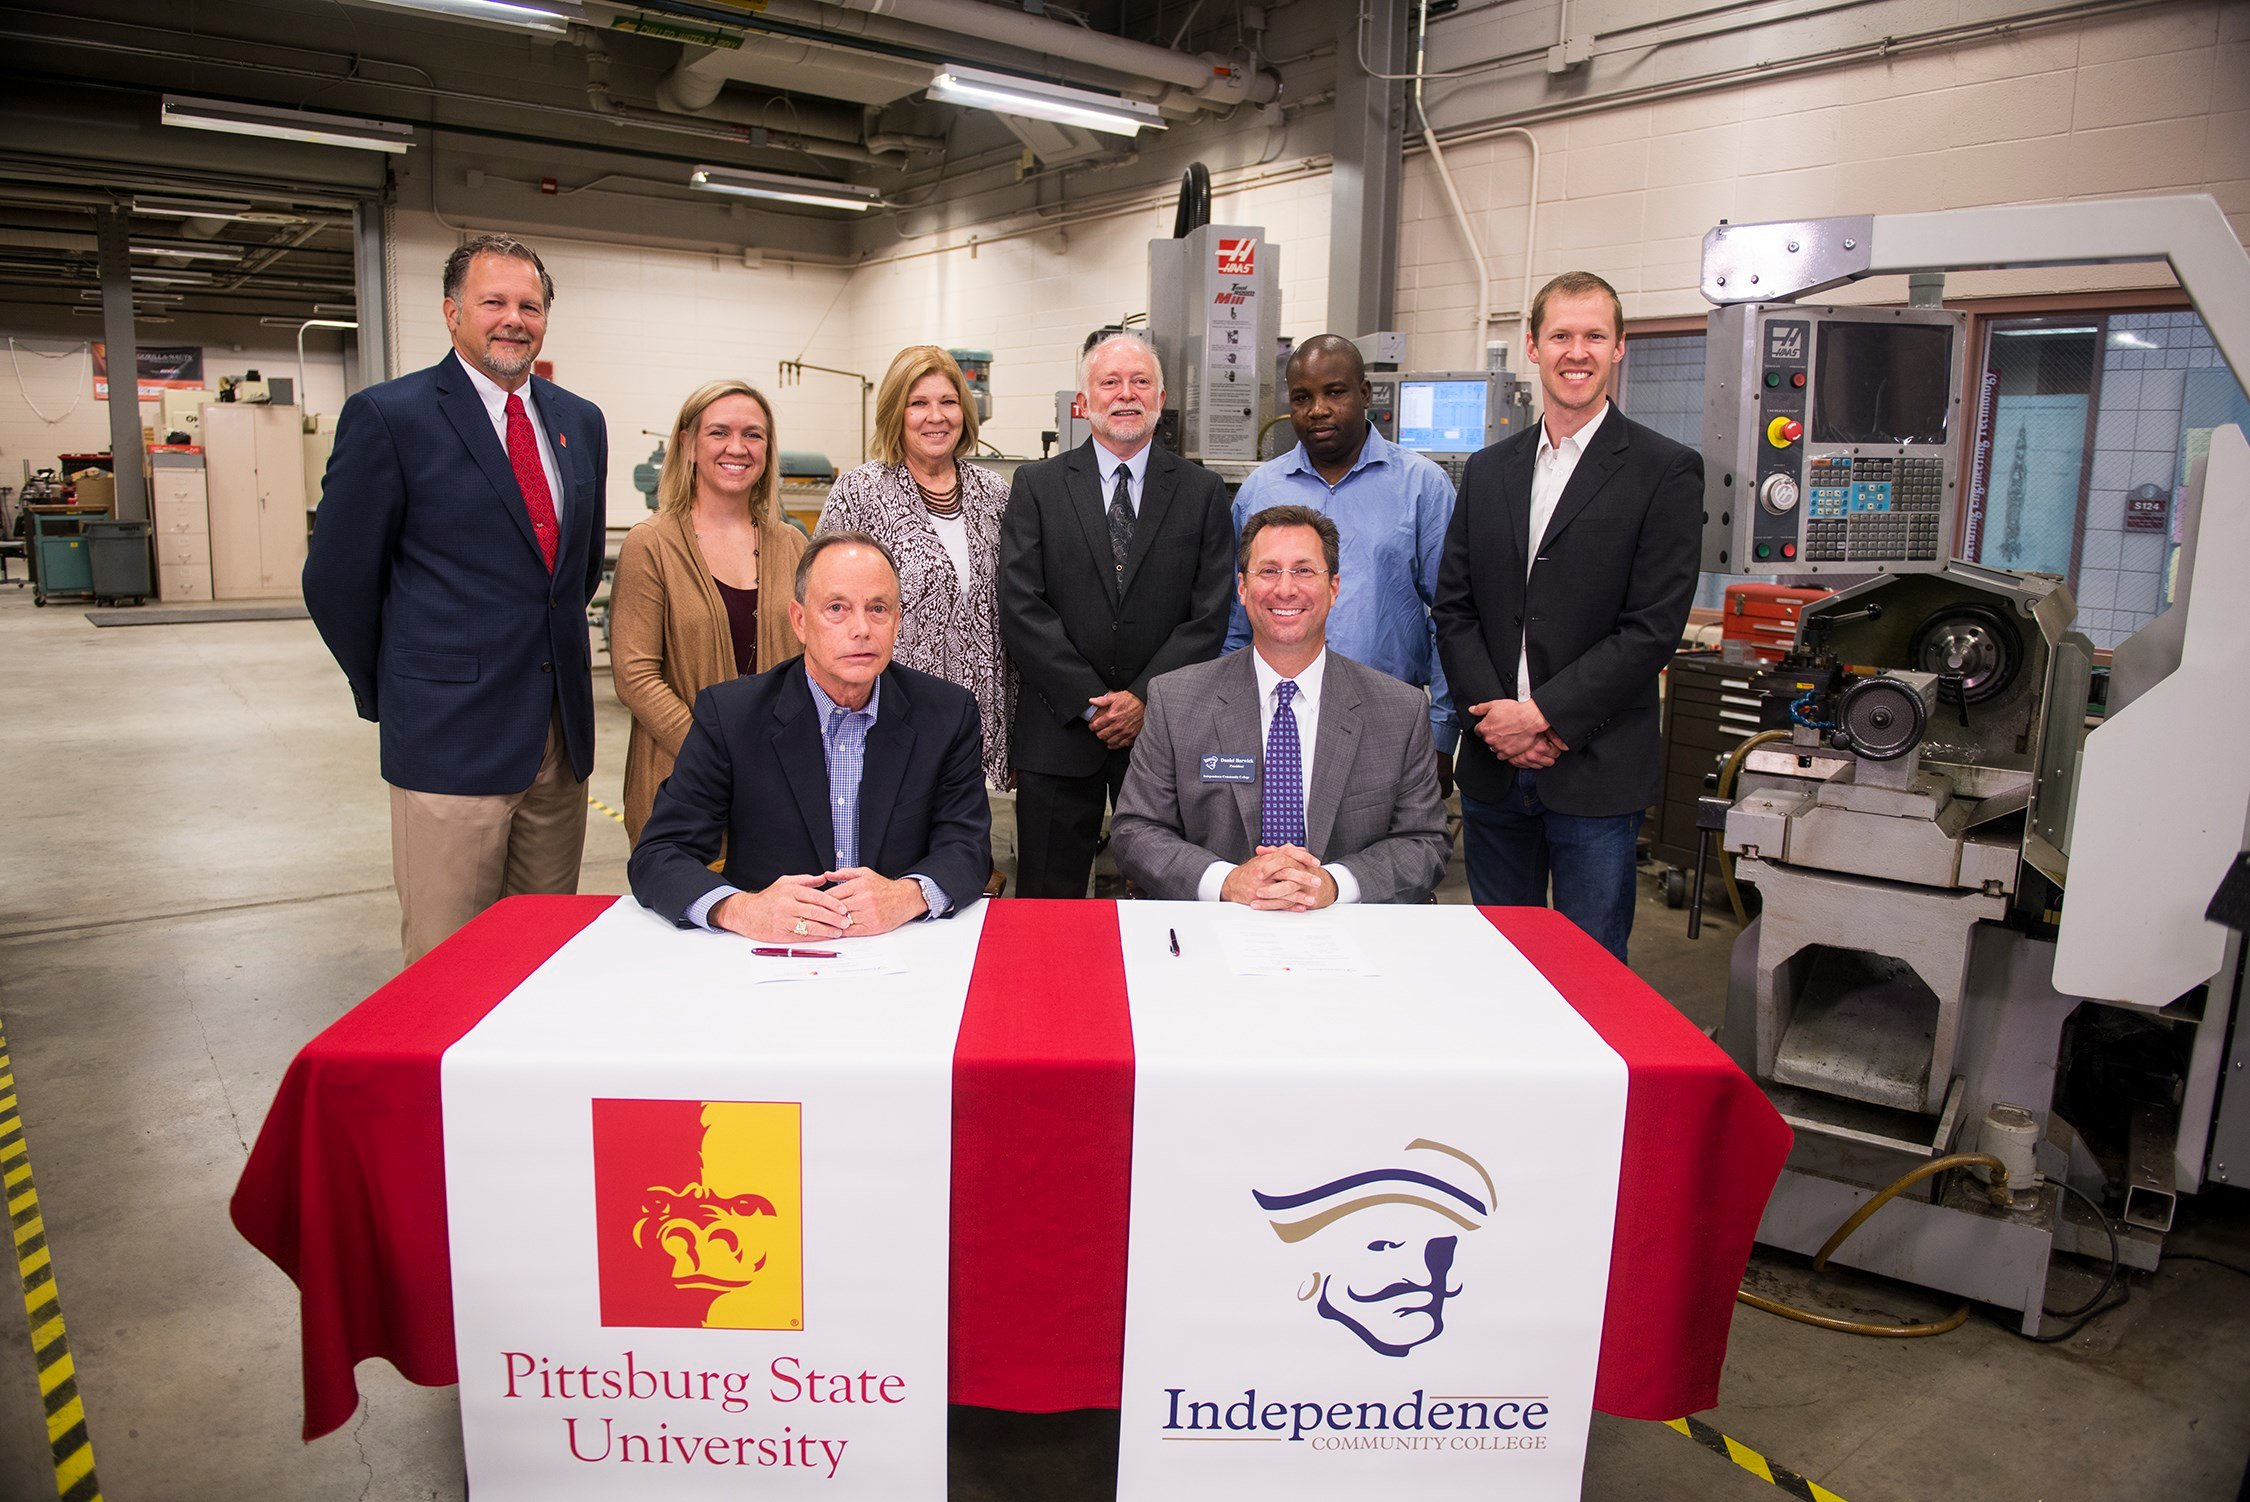 Leadership from Pittsburg State University and Independence Community College gather after the signing of an articulation agreement on Tuesday morning at the Kansas Technology Center.